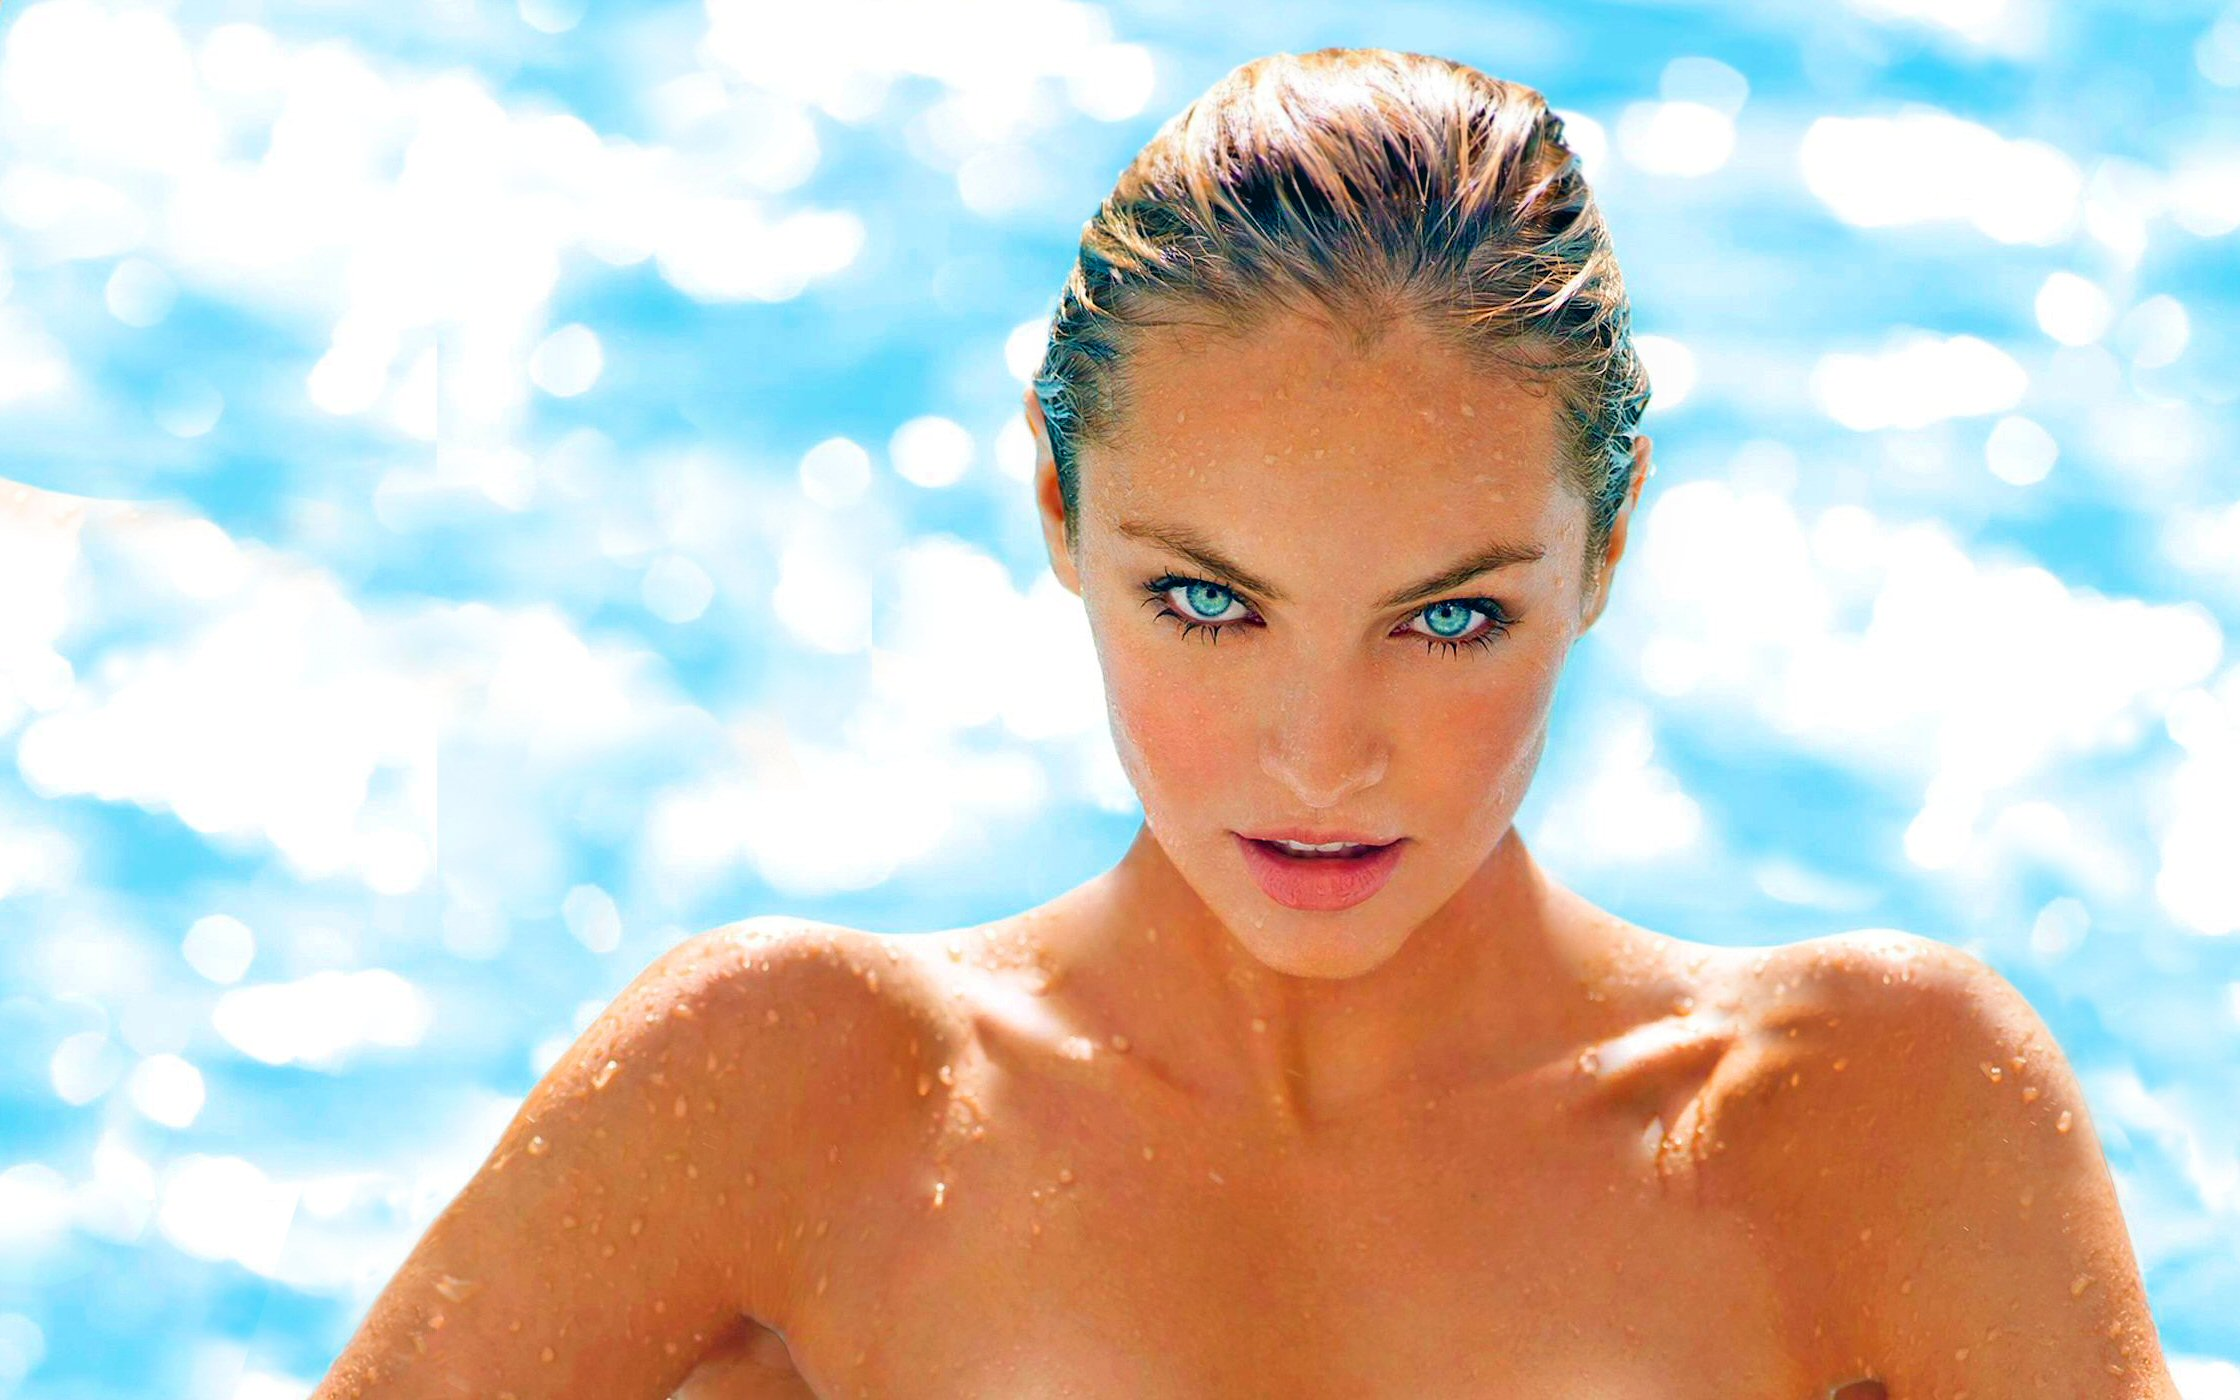 141 Candice Swanepoel HD Wallpapers   Background Images ...